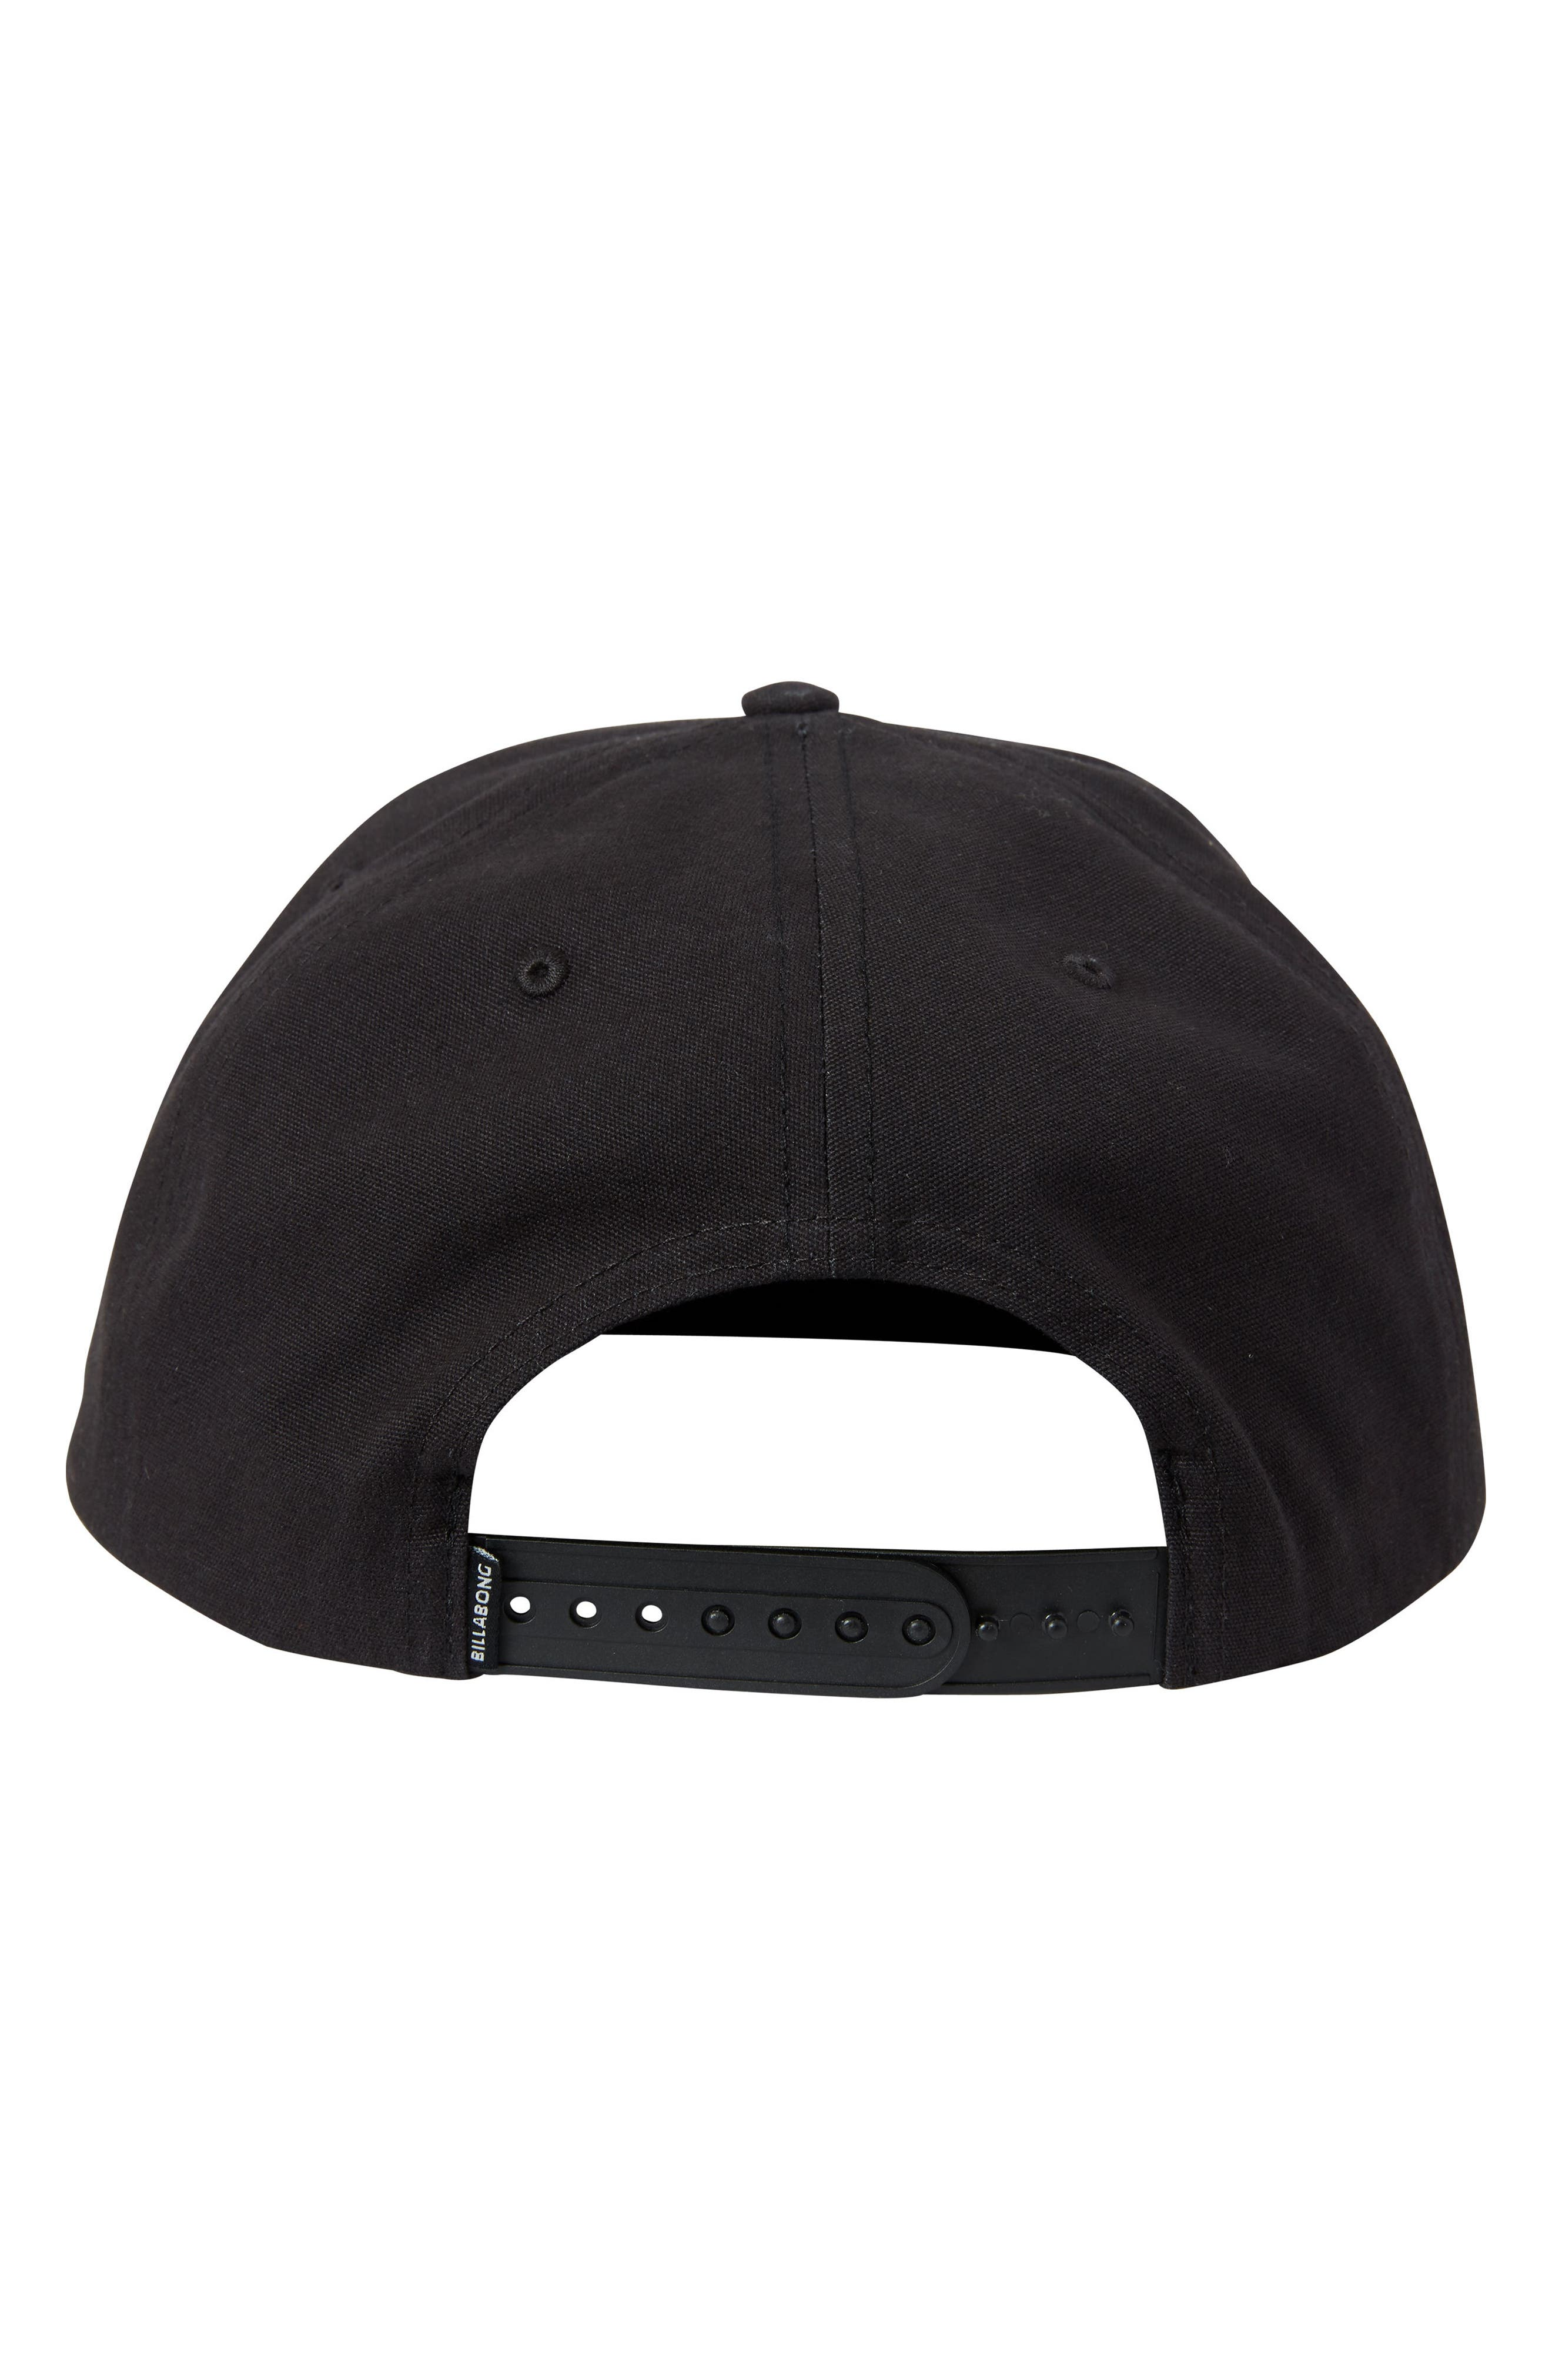 All Day Snapback Baseball Cap,                             Alternate thumbnail 2, color,                             Stealth